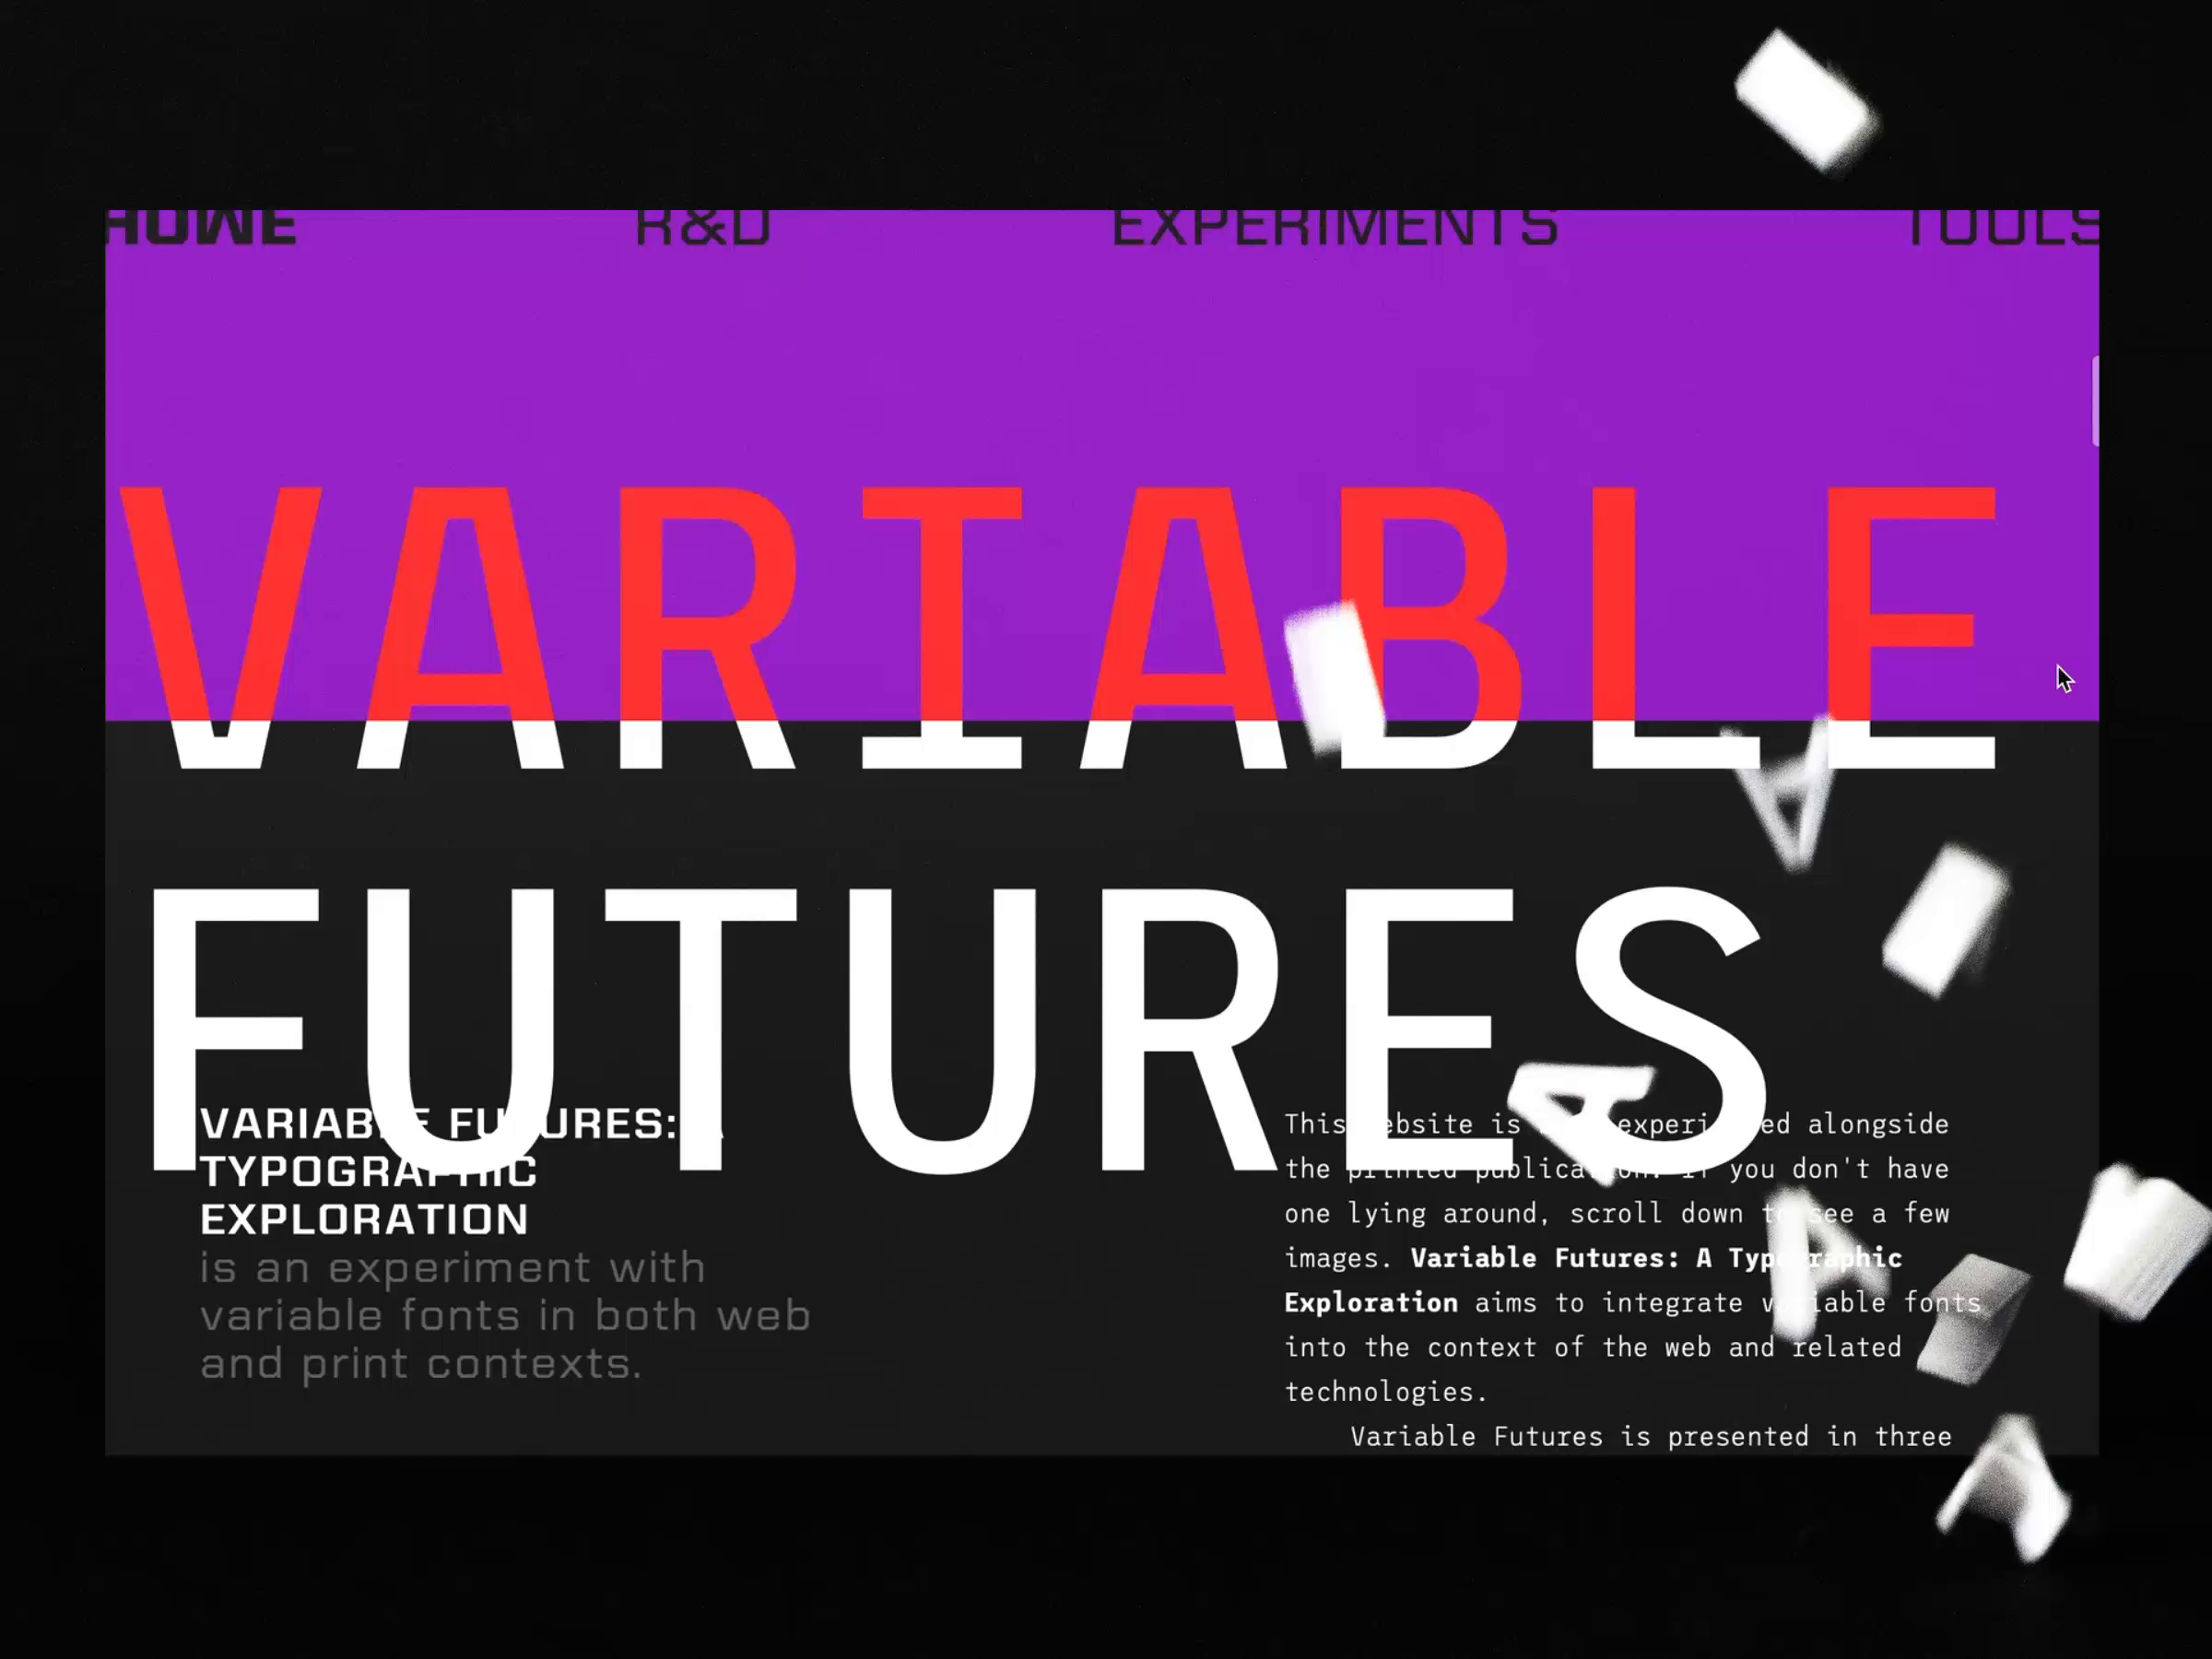 Variable futures